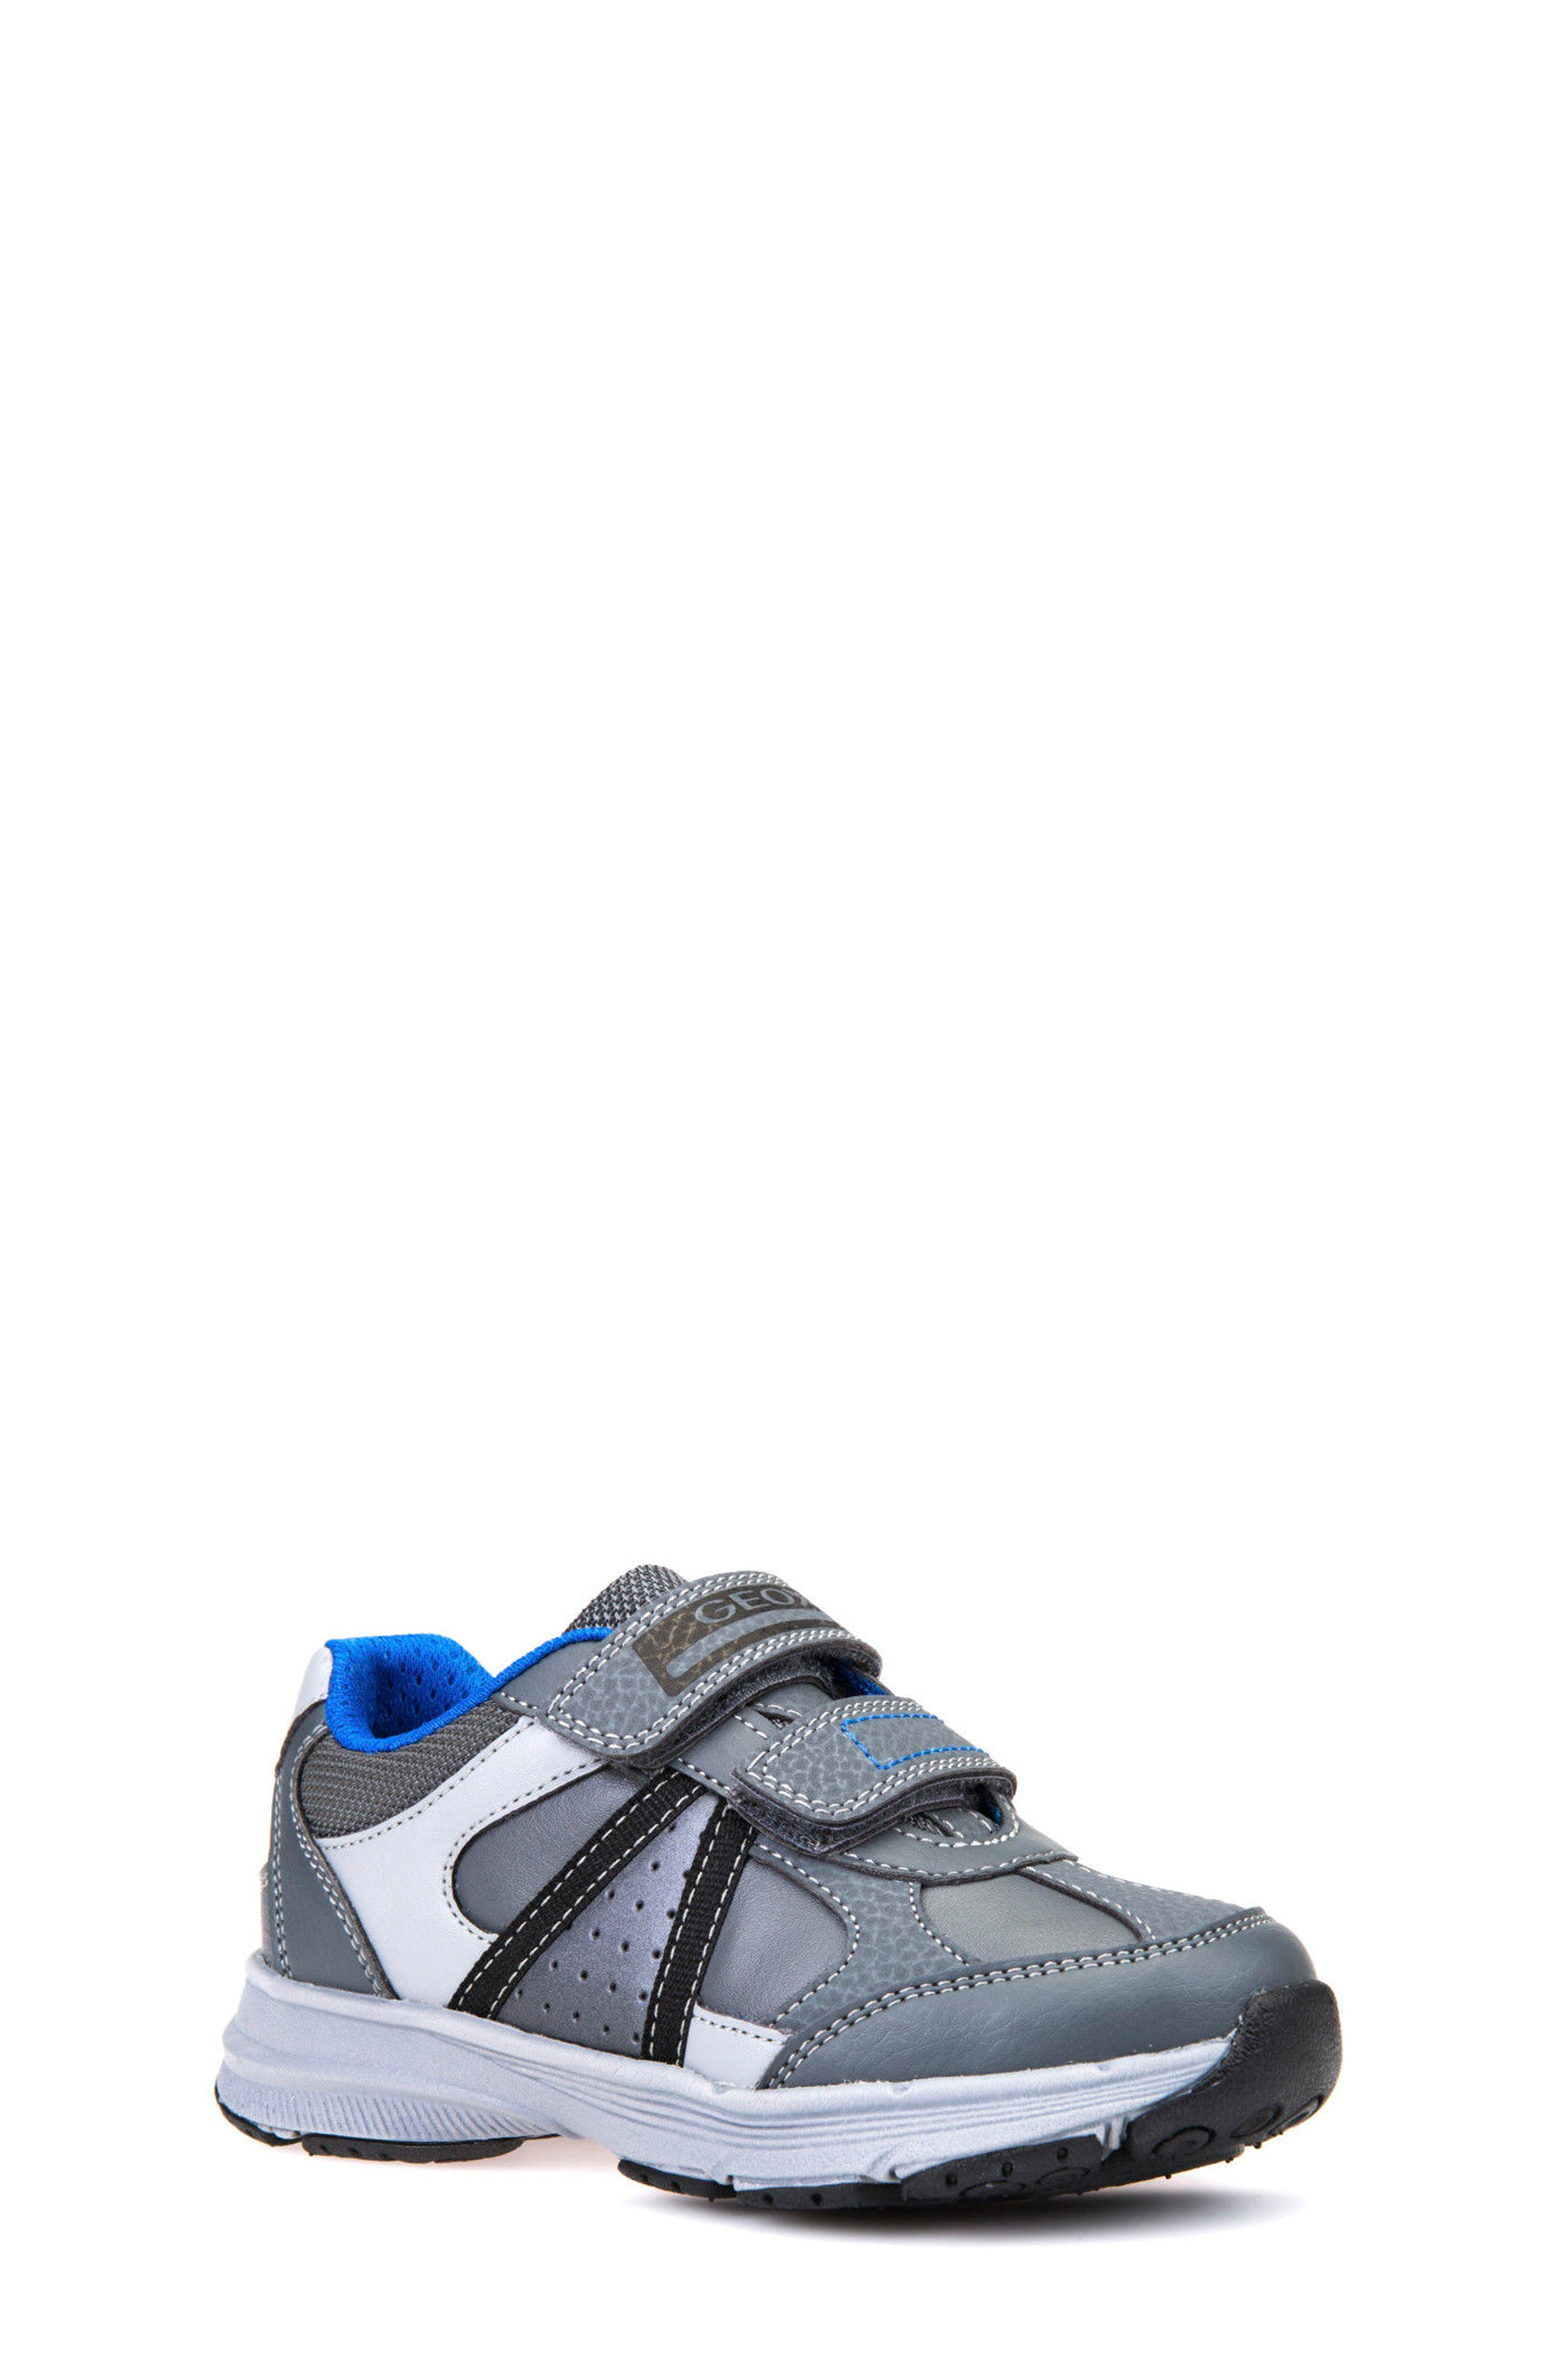 Top Fly Sneaker,                             Main thumbnail 1, color,